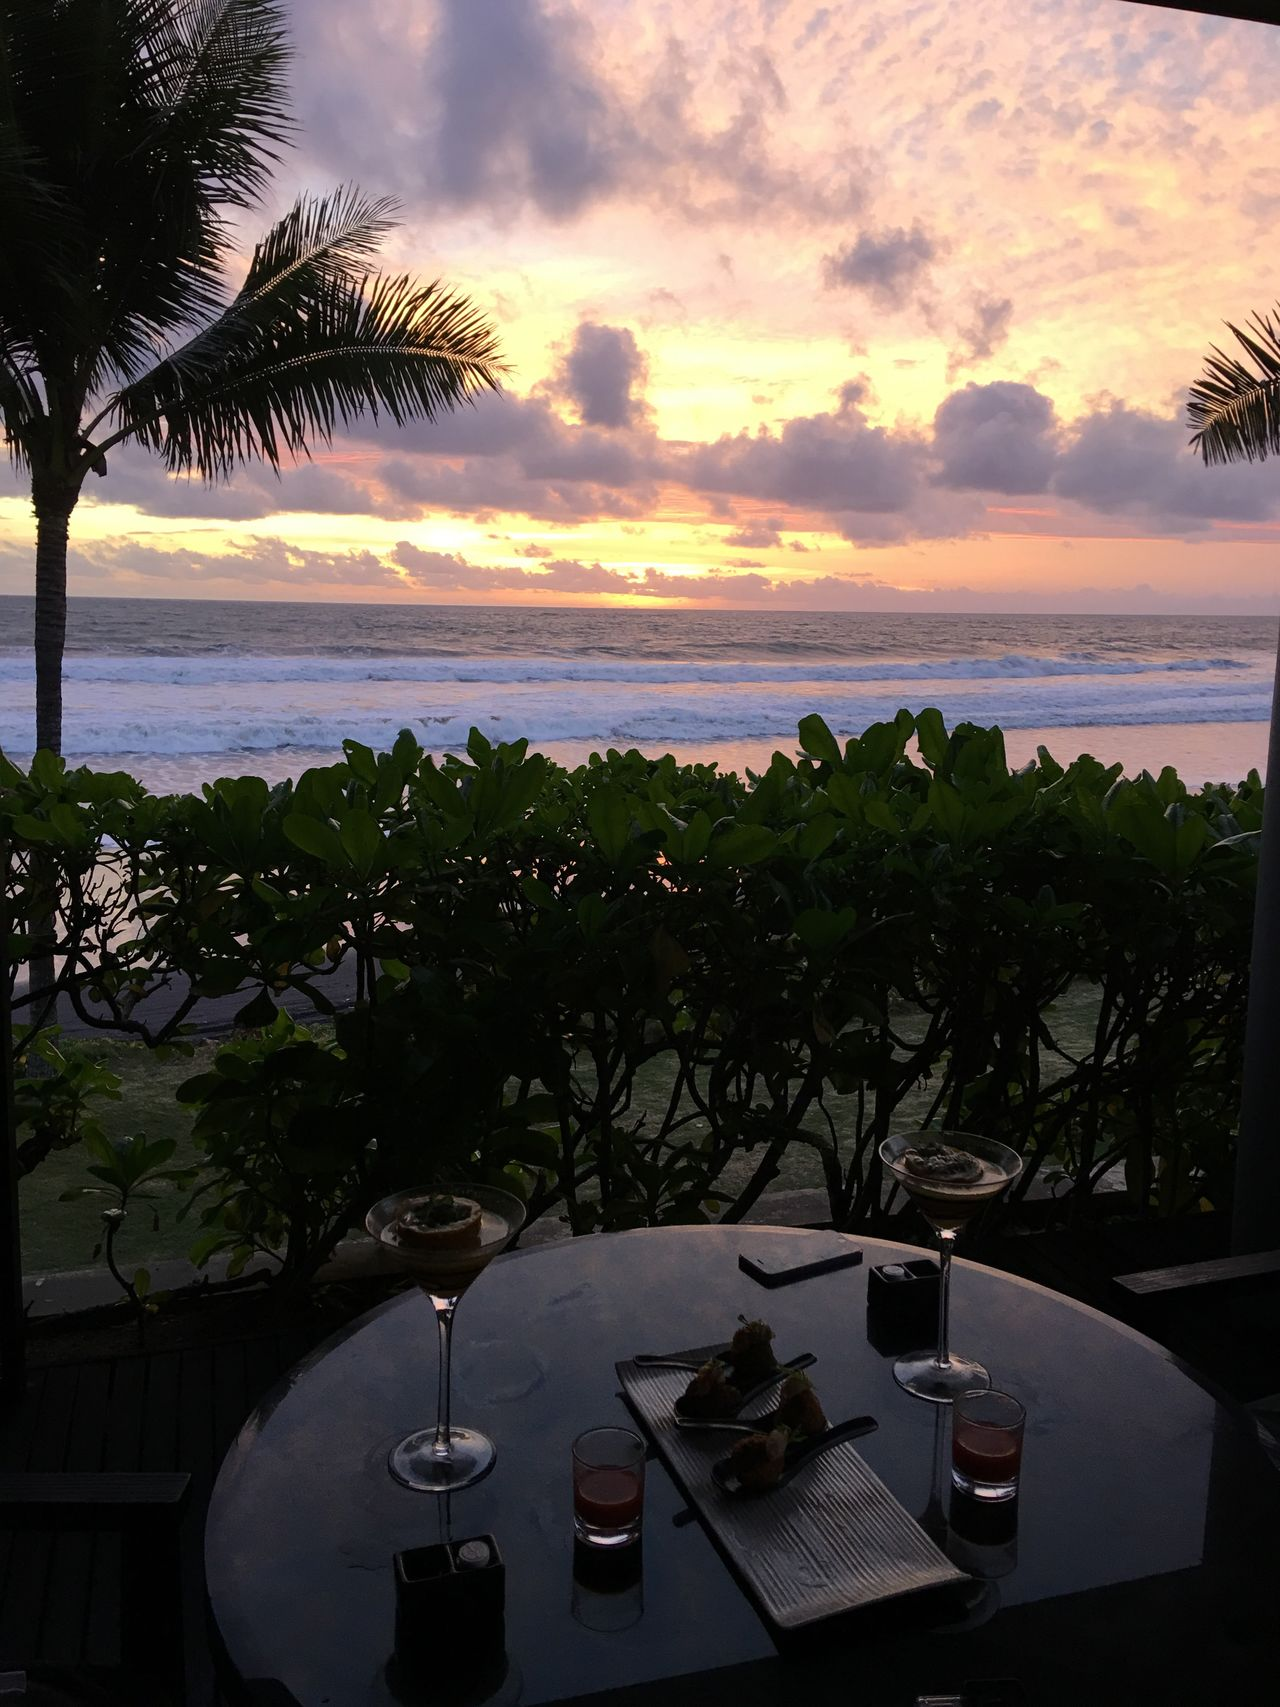 Bali Sunset Sunset_collection Picturesque Cocktails Tapas Chill Relaxing Sea Sky Romantic Getaway  Honeymoon Travel Travel Destinations ASIA